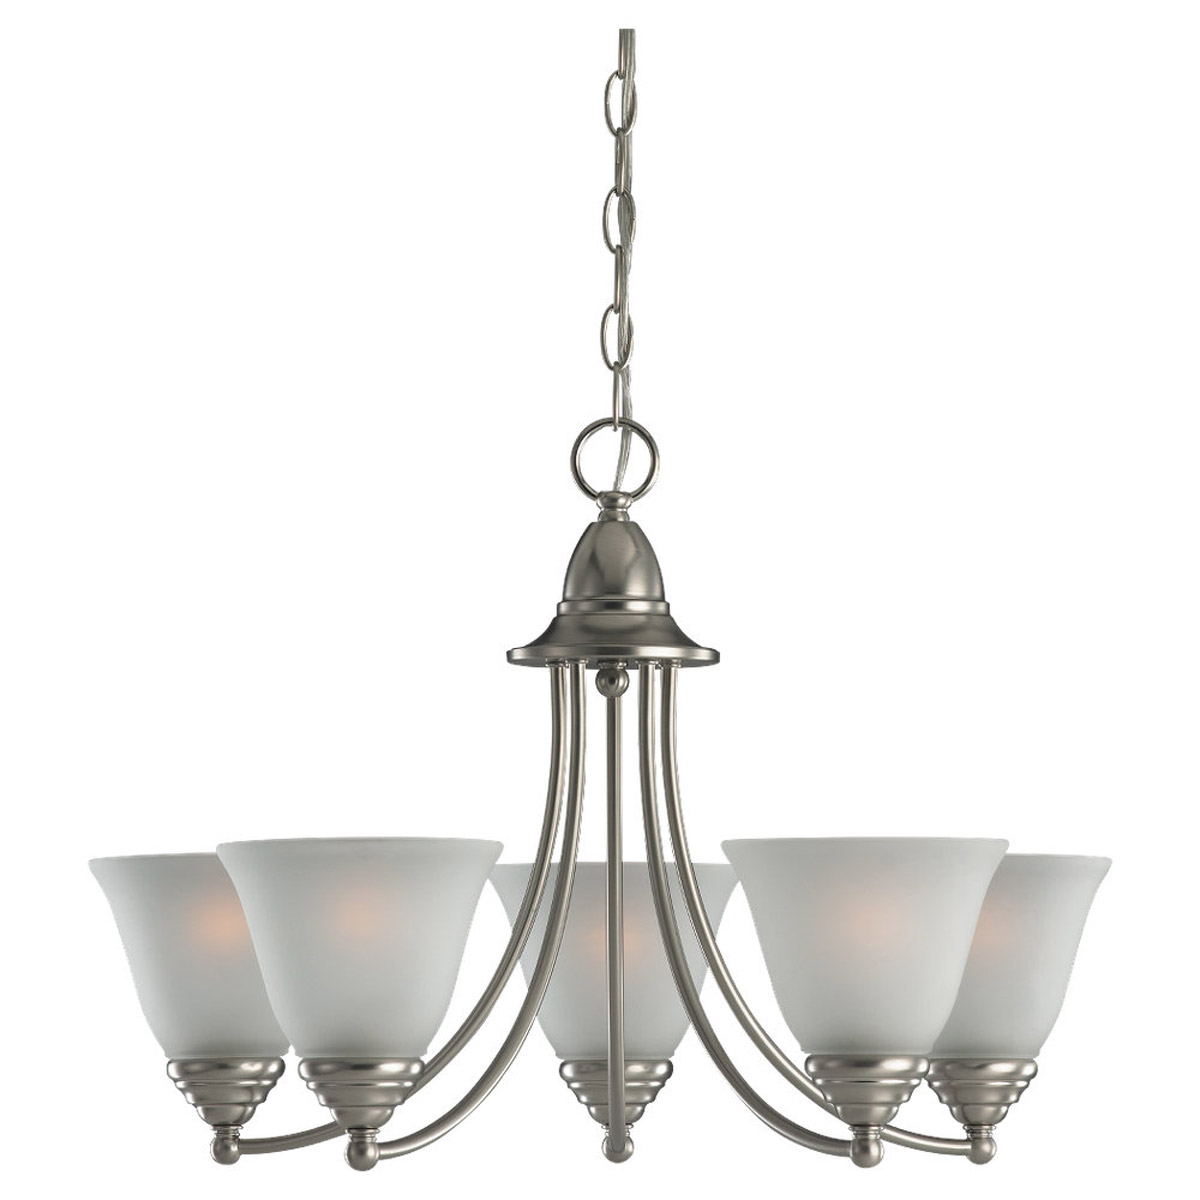 Sea Gull Lighting Albany 5 Light Chandelier in Brushed Nickel 31576-962 photo